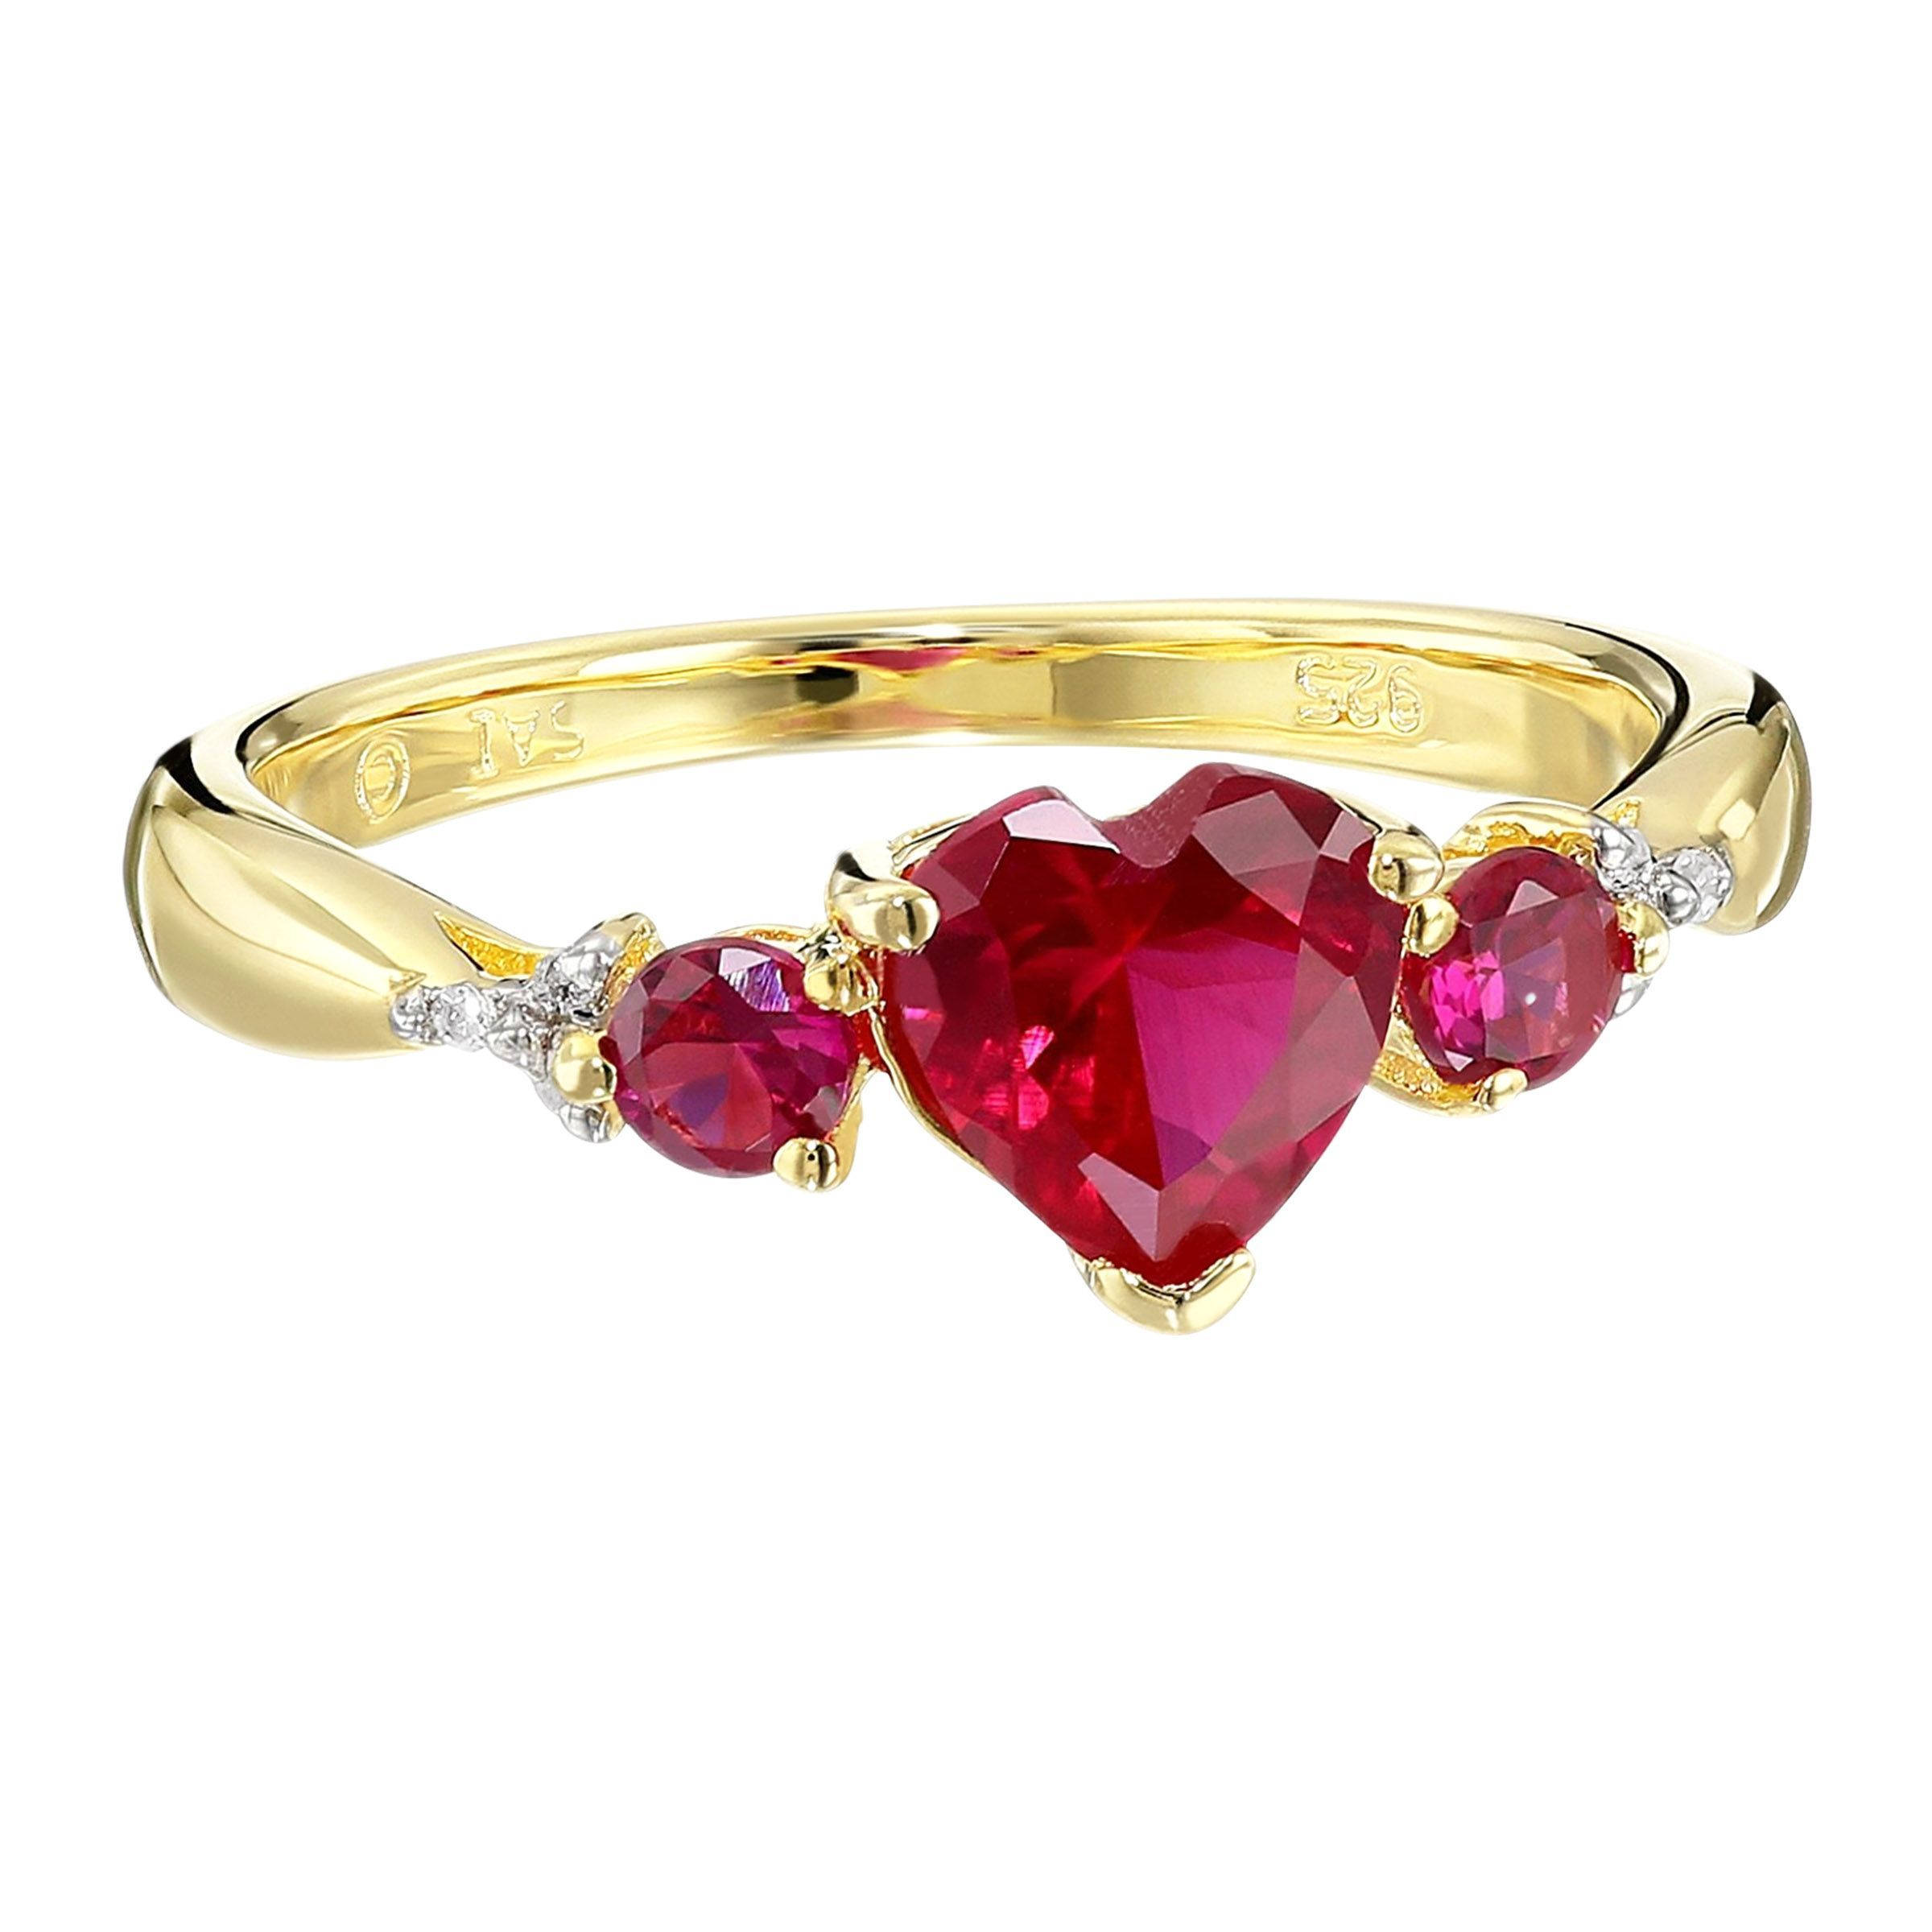 356fda72cfd76 Details about Triple Heart Created Ruby Ring with Diamonds in 14K  Gold-Plated Sterling Silver